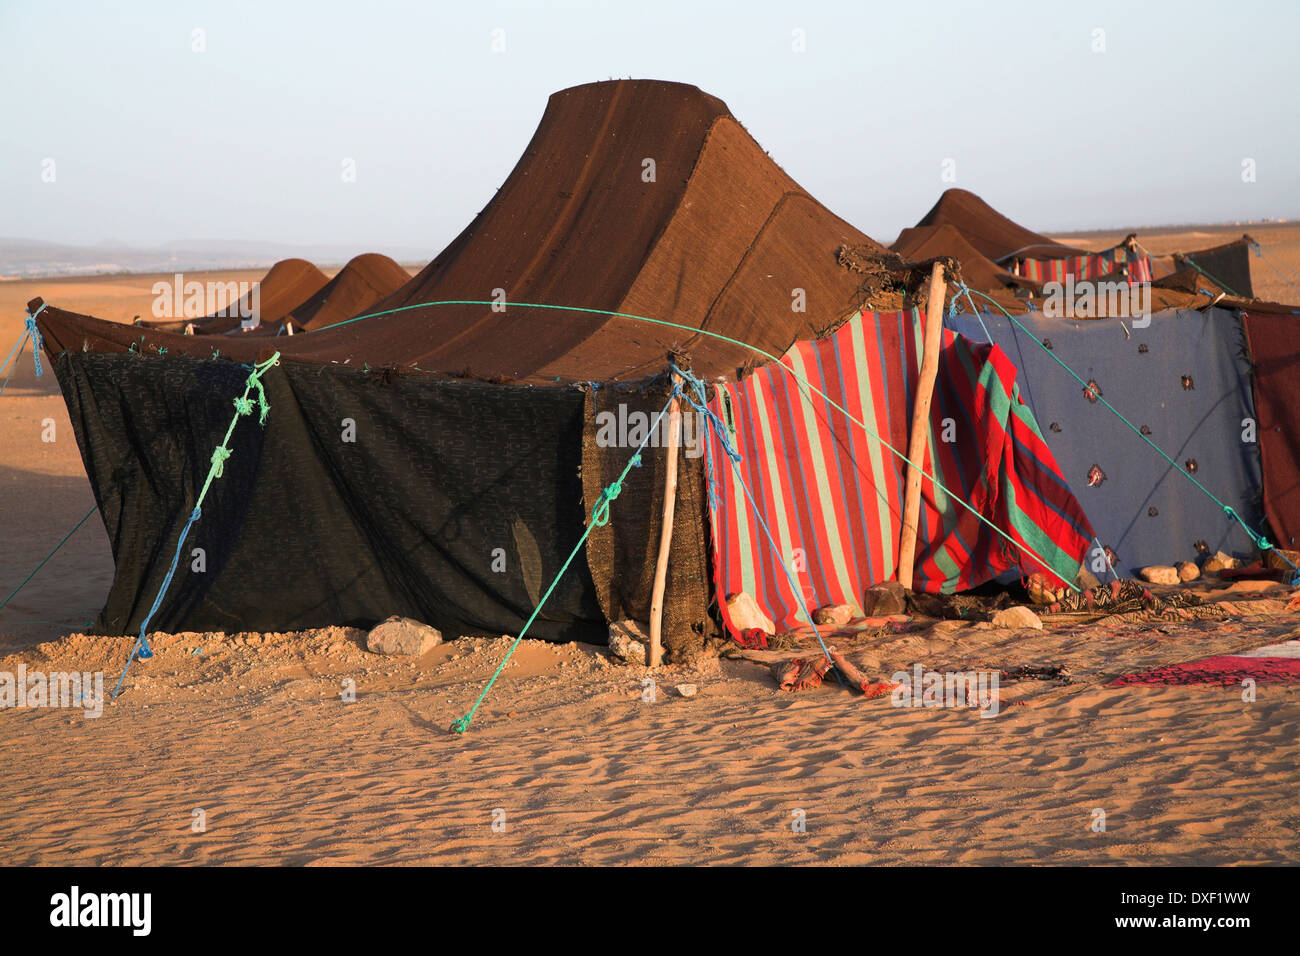 Nomadic Berber tents used as overnight c& by tourist groups camel trekking Sahara desert near Zagora Morocco north Africa & Nomadic Berber tents used as overnight camp by tourist groups ...